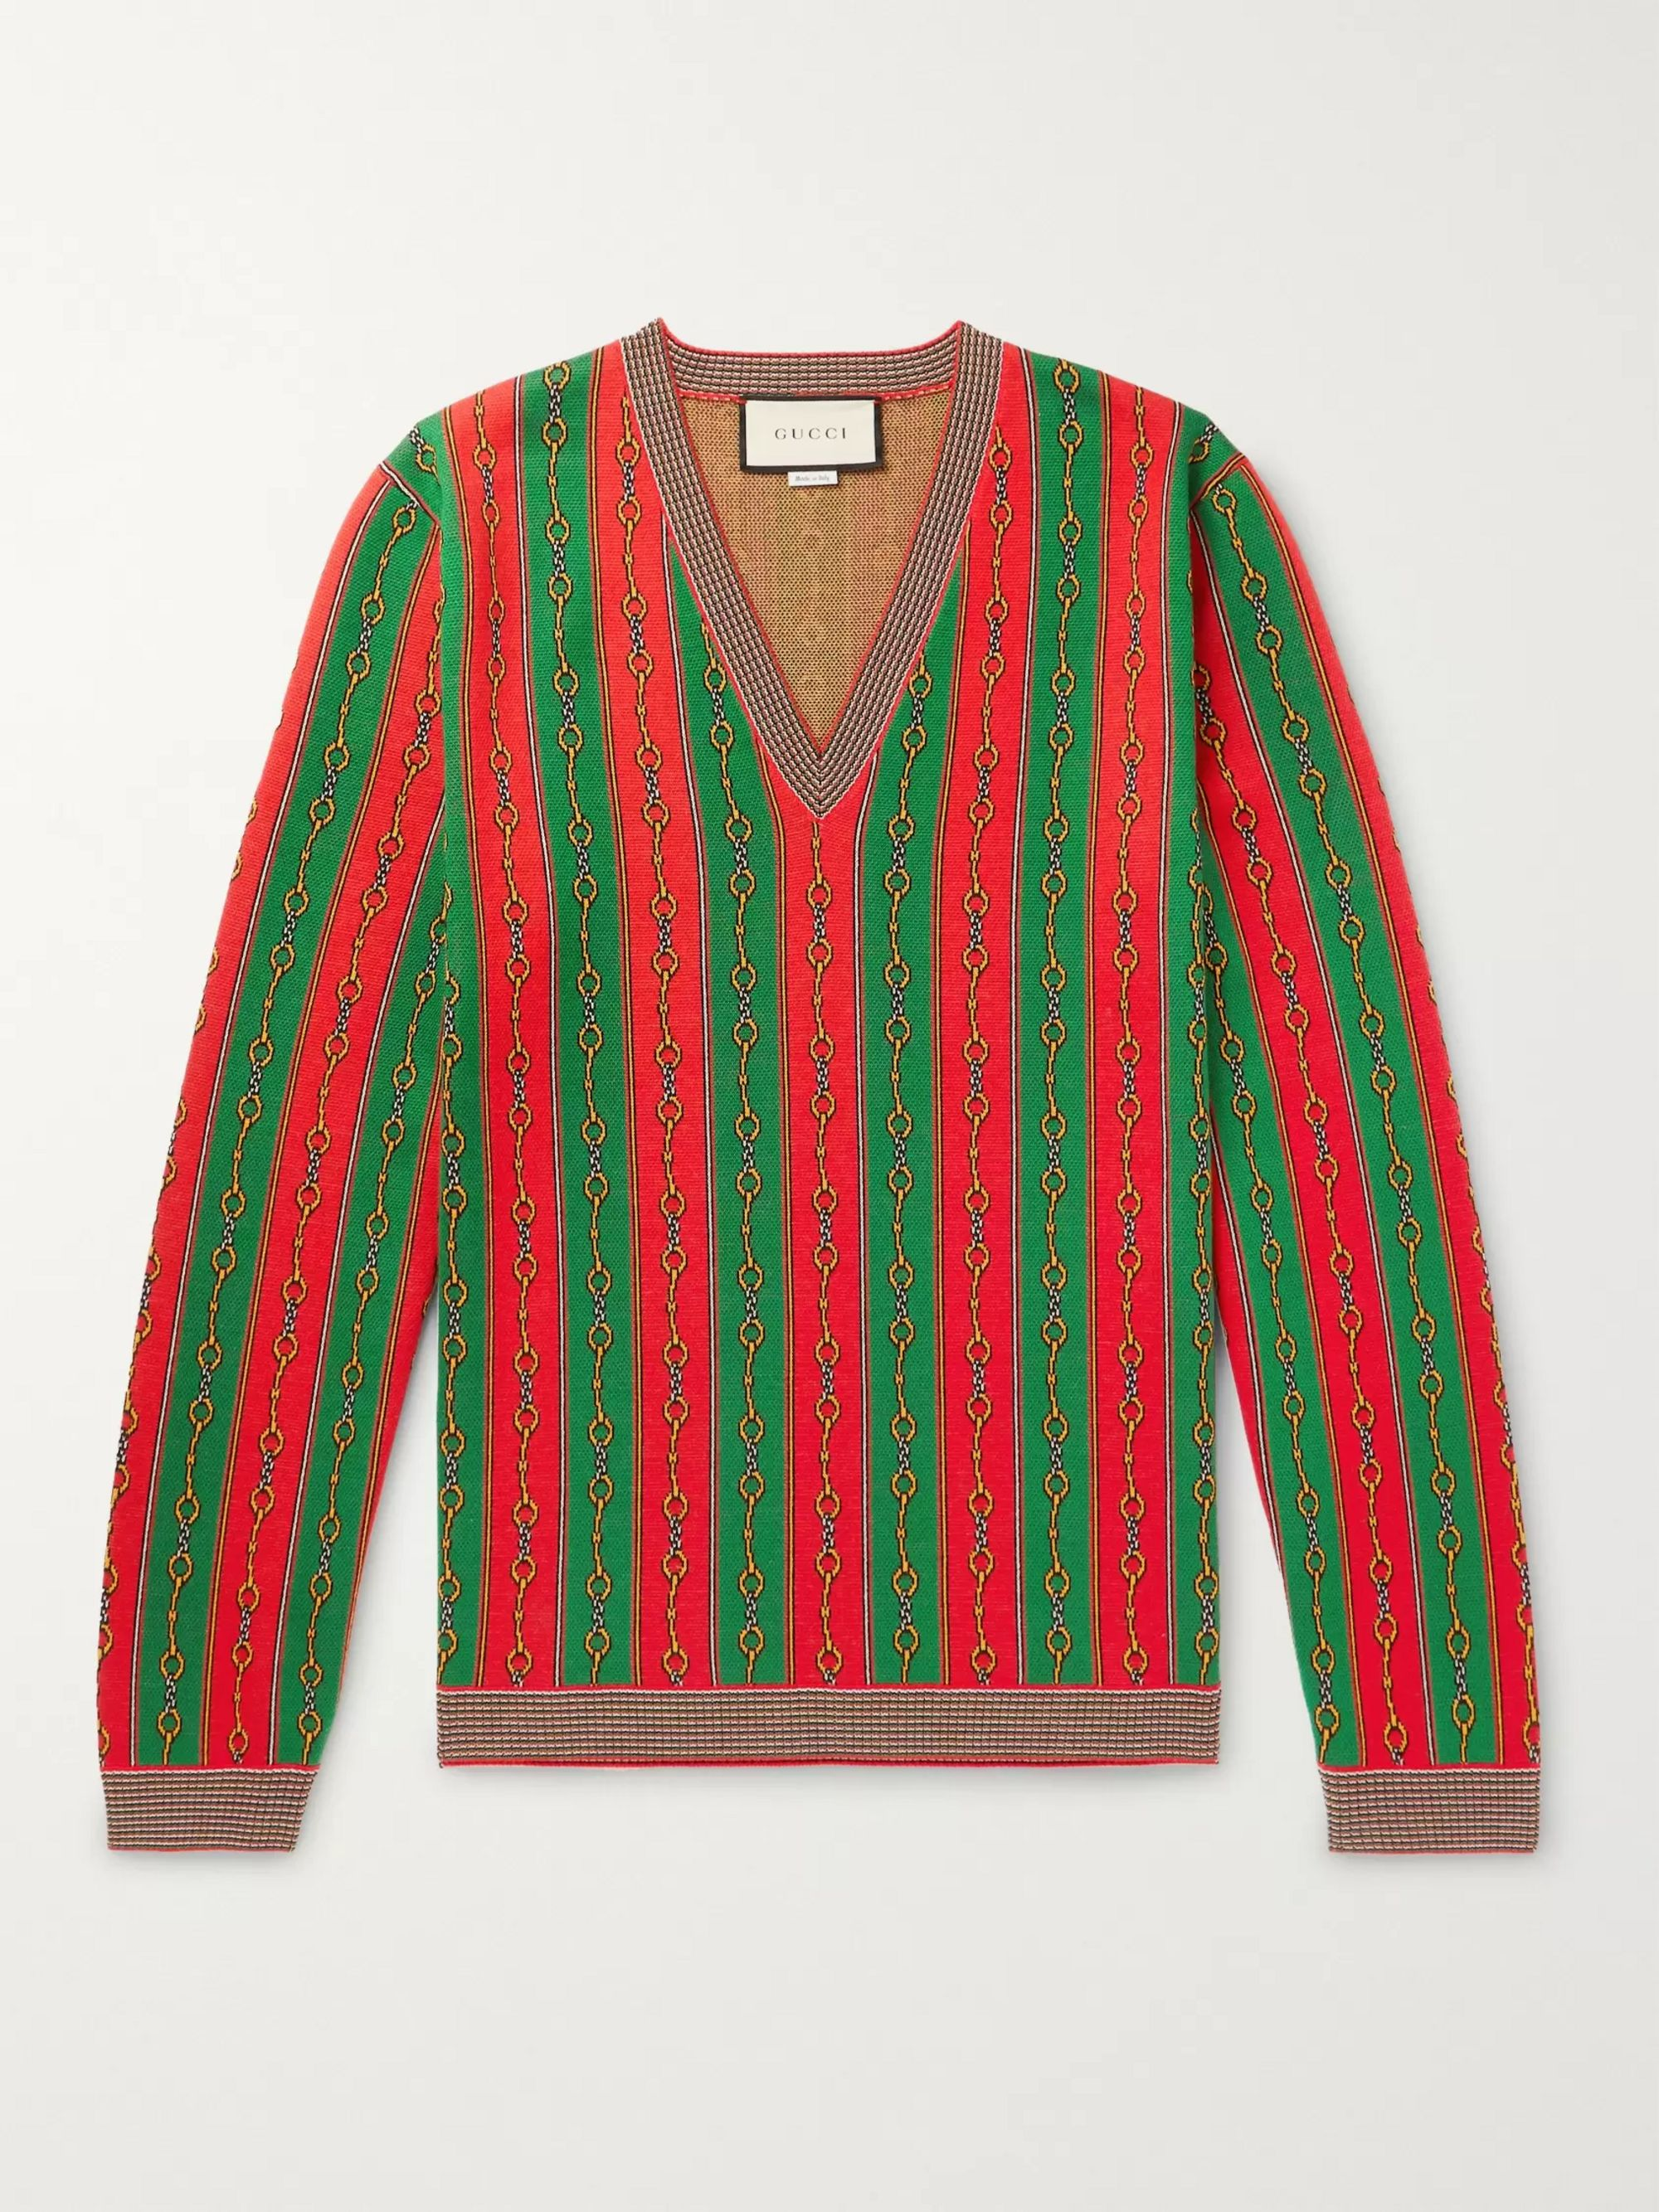 Gucci Cotton, Wool and Cashmere-Blend Jacquard Sweater